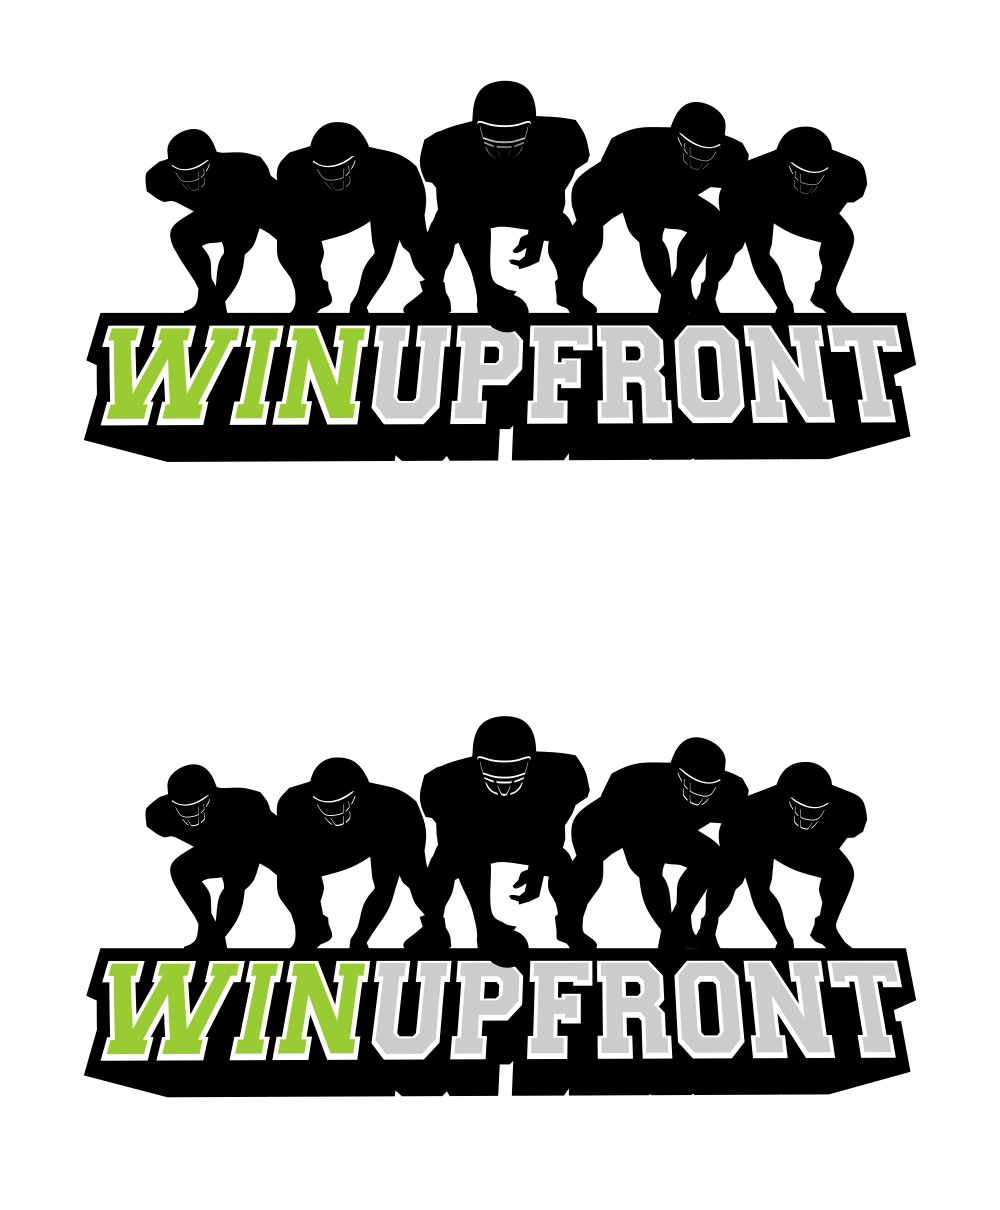 New logo wanted for WinUpFront.com